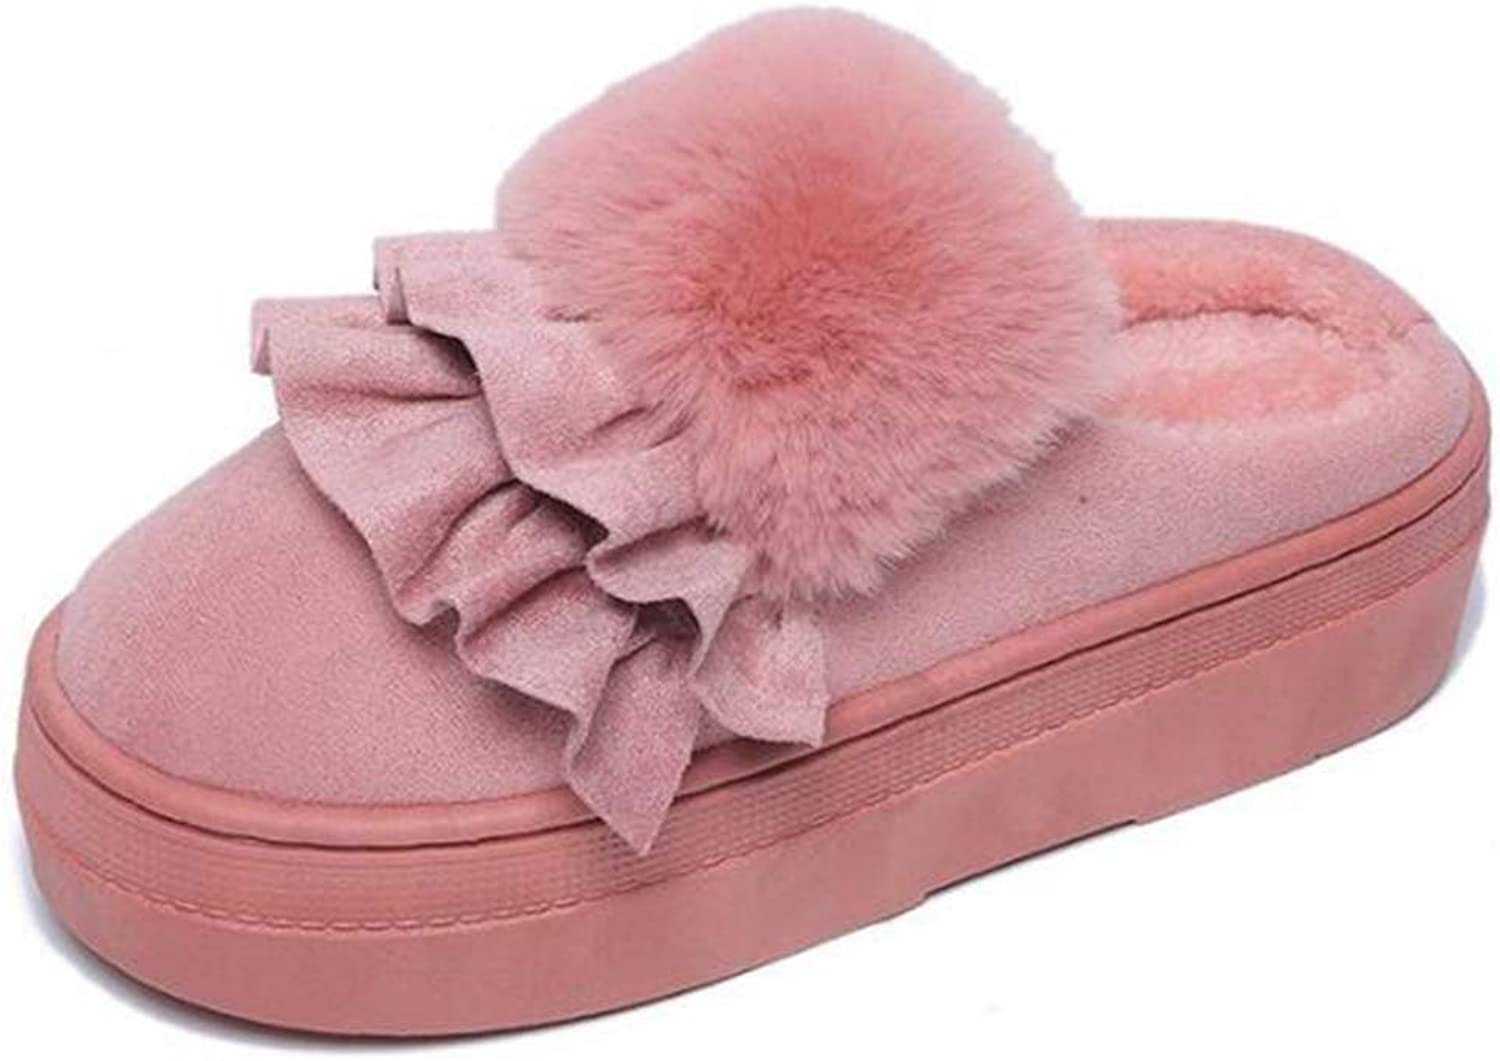 T-JULY Women Slippers Winter Warm Fur Home Platform shoes Girl Soft Non-Slip Indoor Wedges Slides shoes with Ruffles